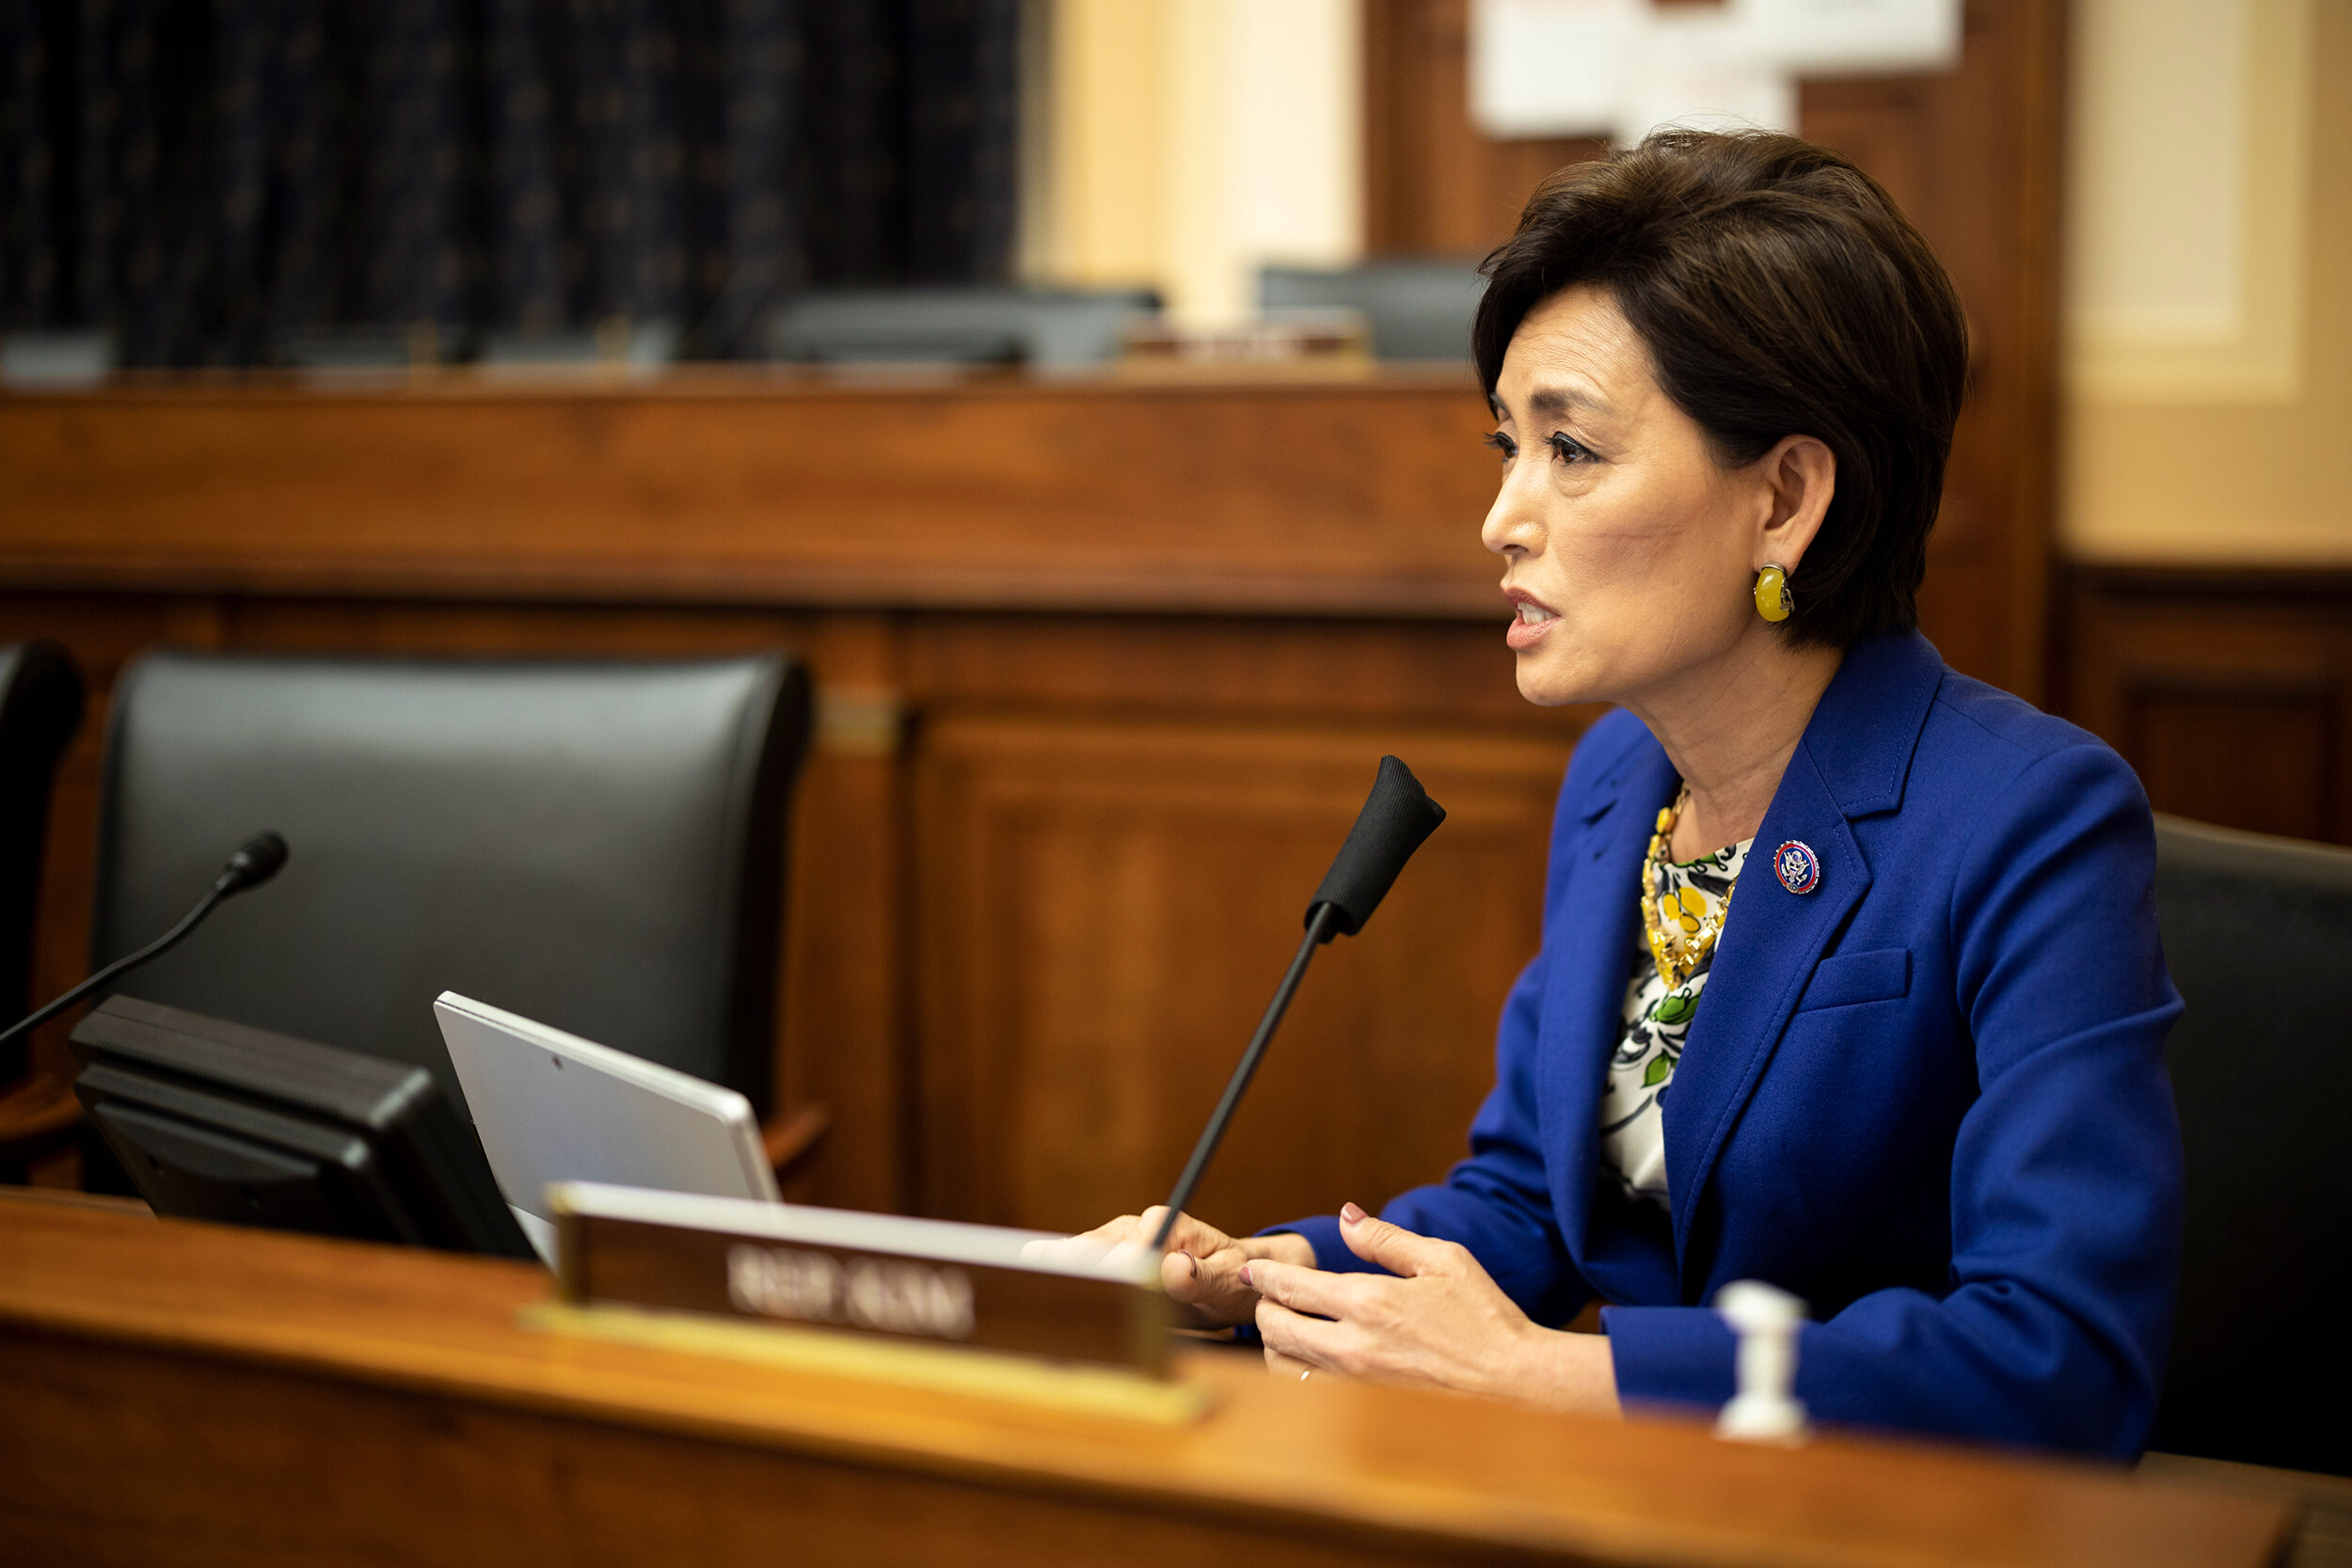 'We have to build off that success': GOP hopes women lead the party back to House majority